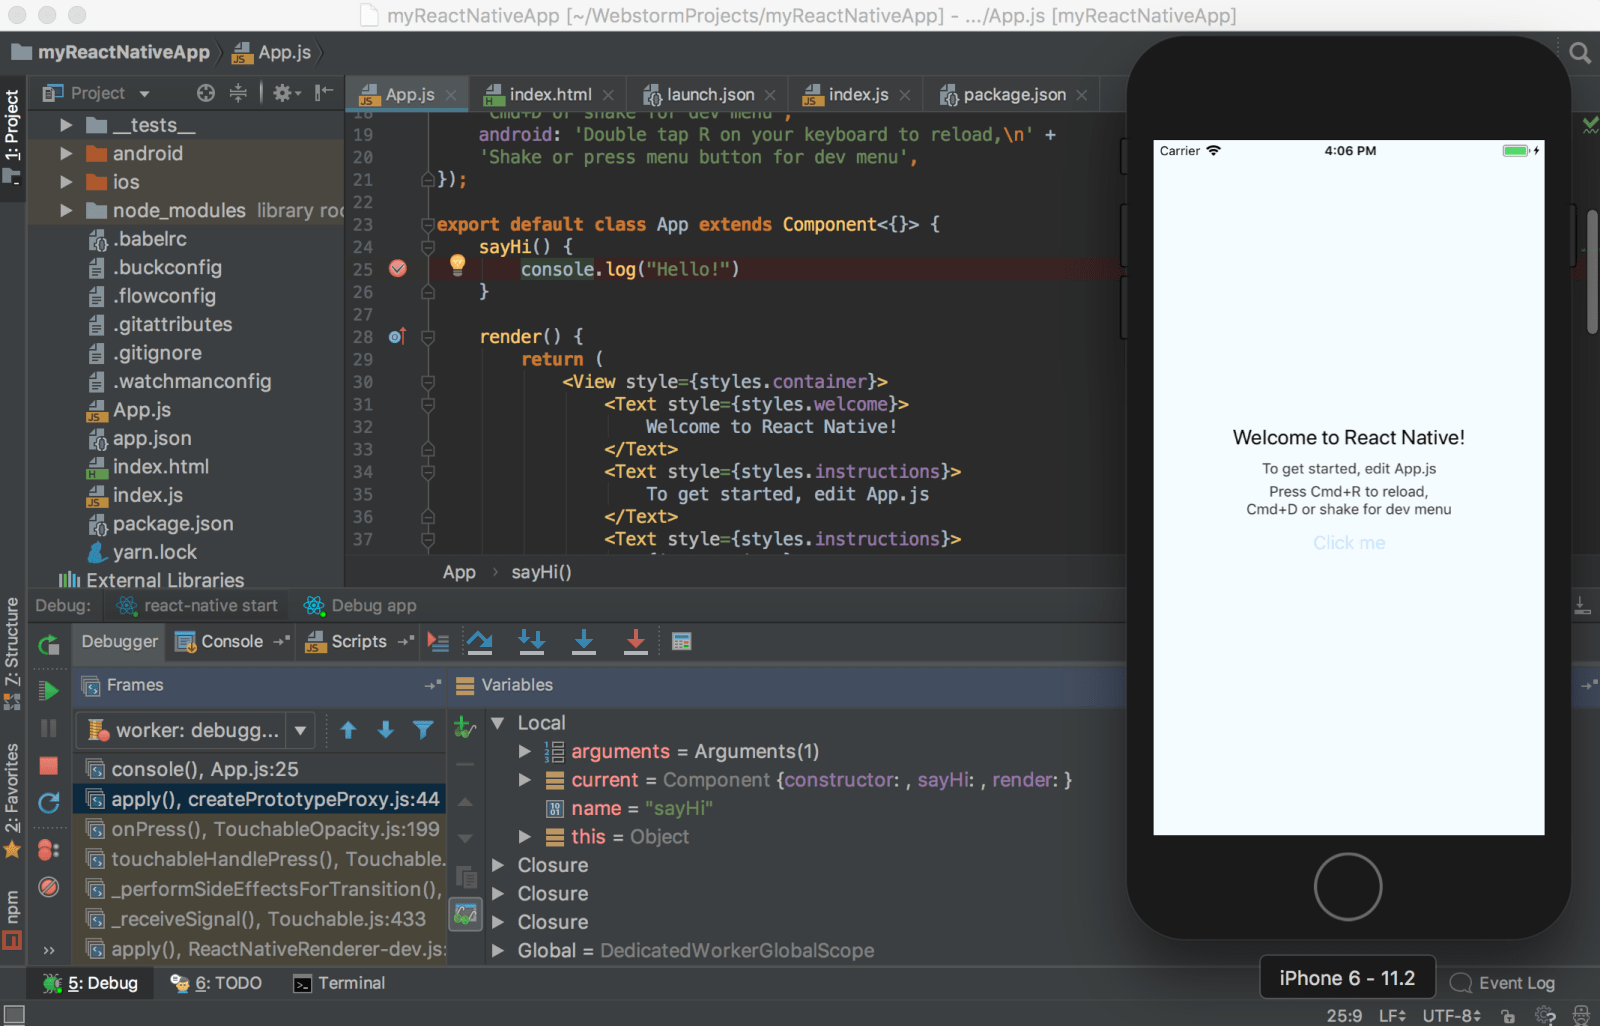 The React Native app is running on the simulator